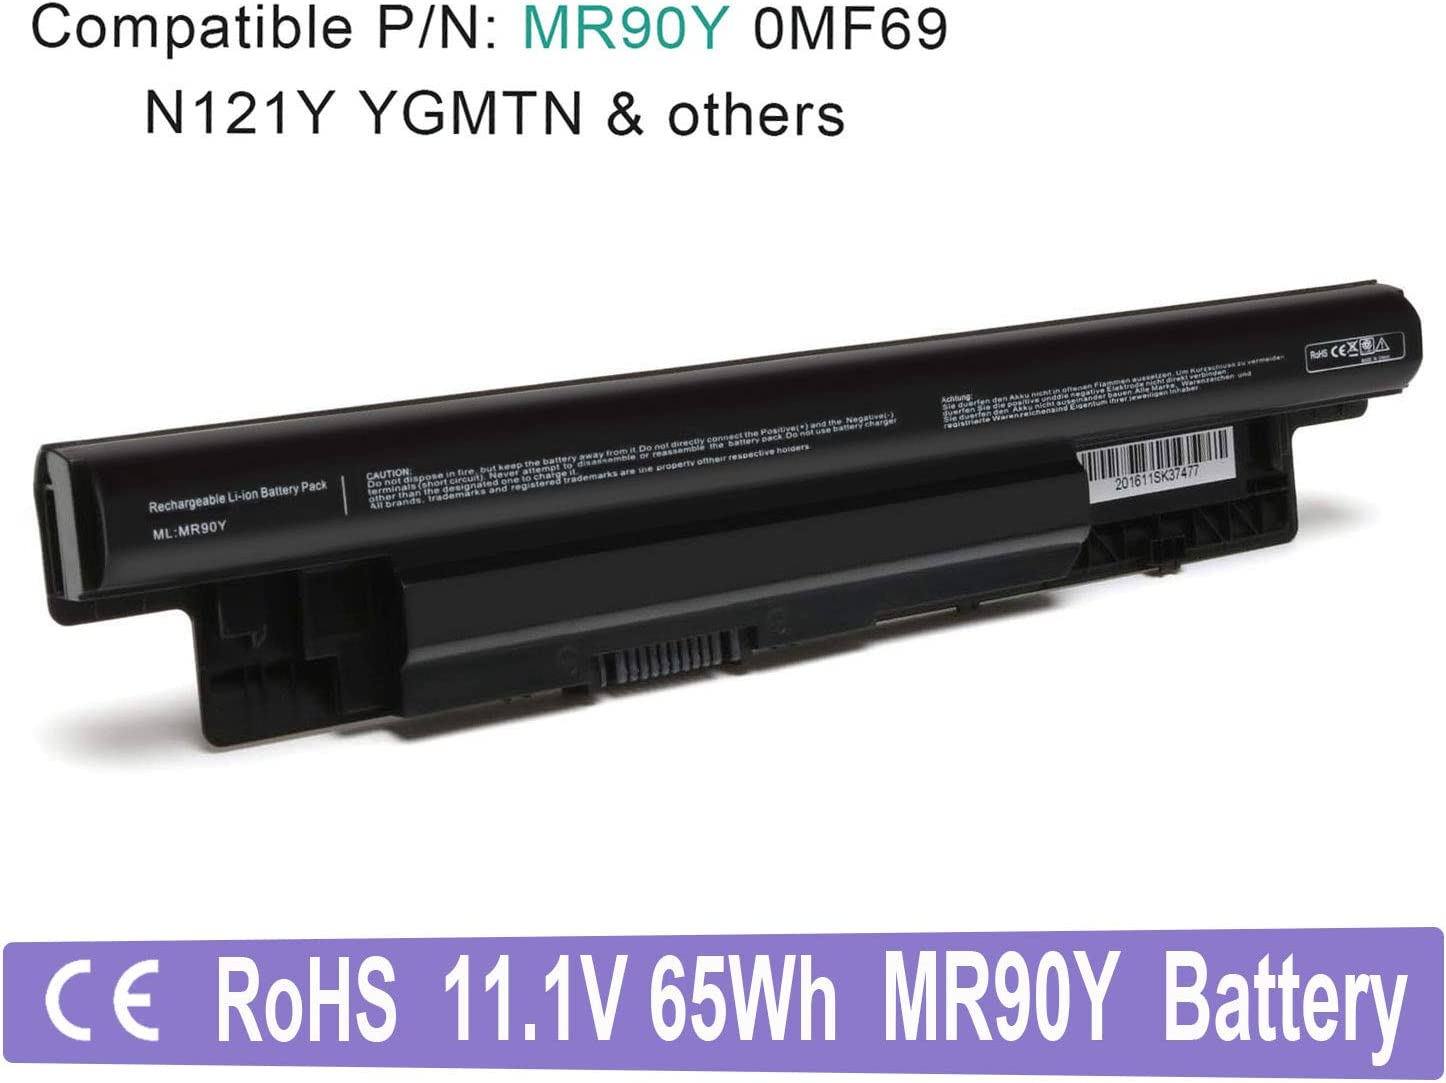 VUOHOEG 11.1V 65WH MR90Y New Laptop Battery Replacement for Dell Inspiron 14 3421, 14R 5421, 14R 5437,15 3521,15R 5521, 15R 5537, 17 3721, 17 3737, 17R 5721, 17R 5737; fit Dell Latitude 3440 3540